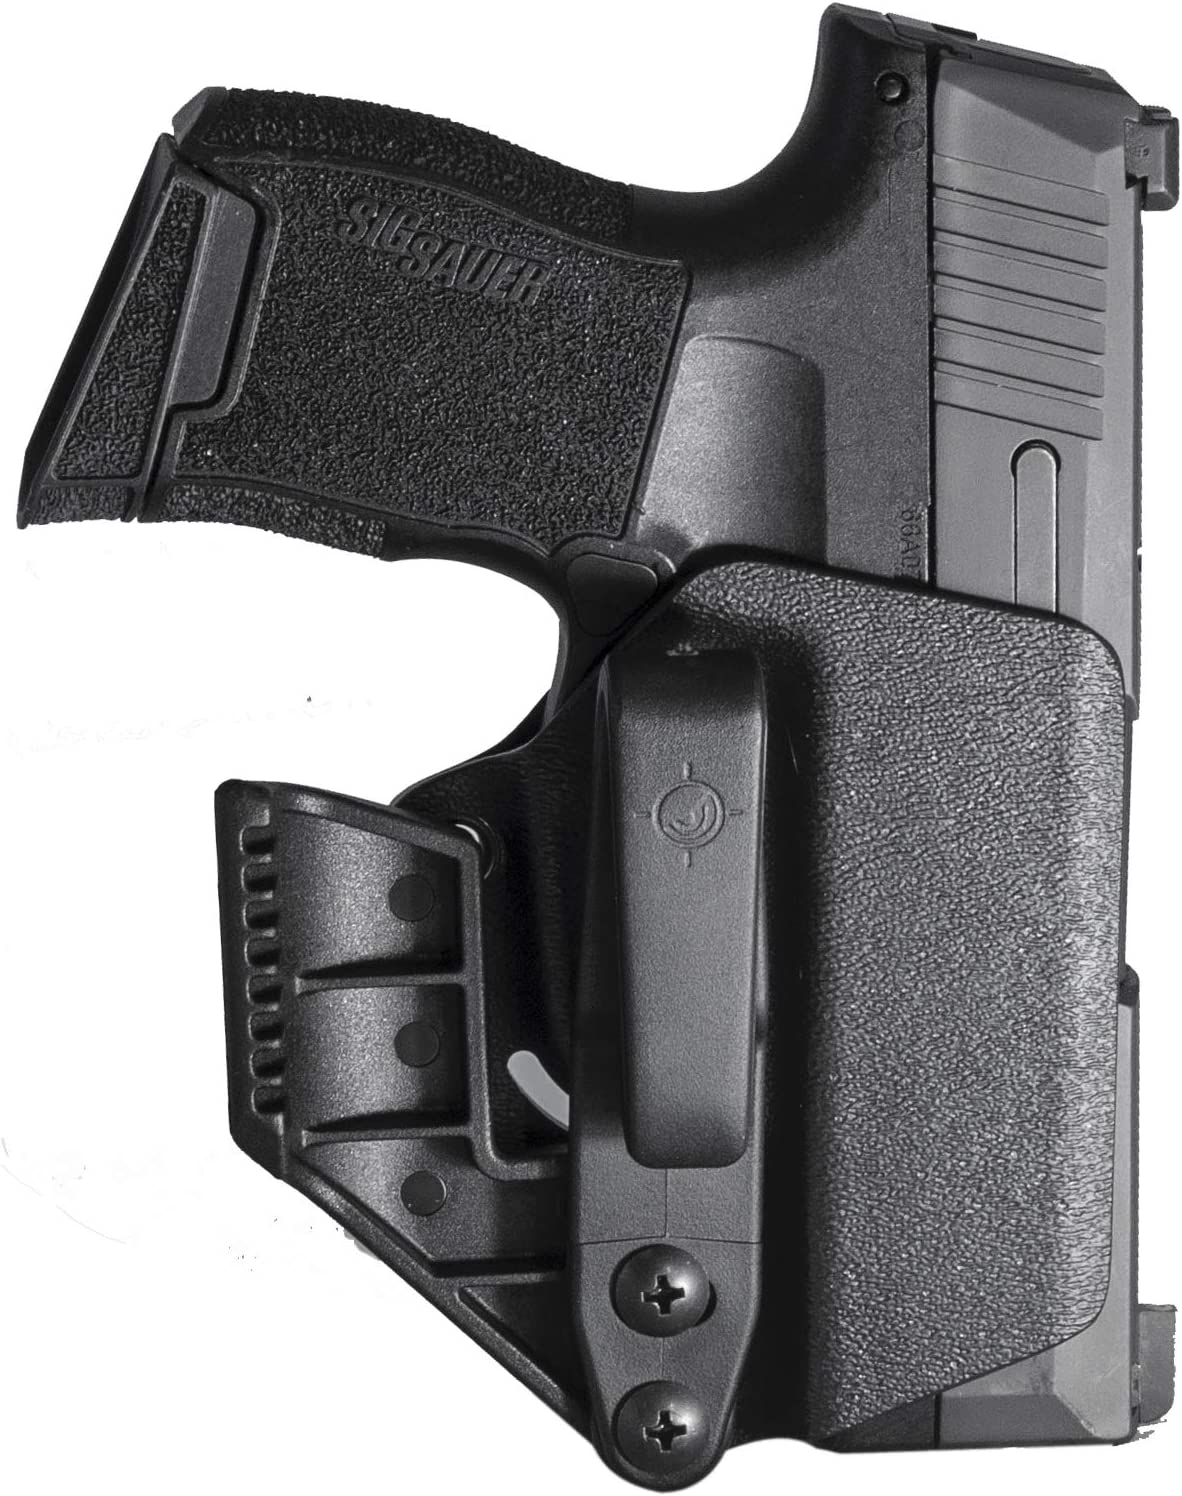 FRONTLINE HOLSTERS Holster ~ Free shipping AMBI Kydex Mag Carrier IWB//OWB